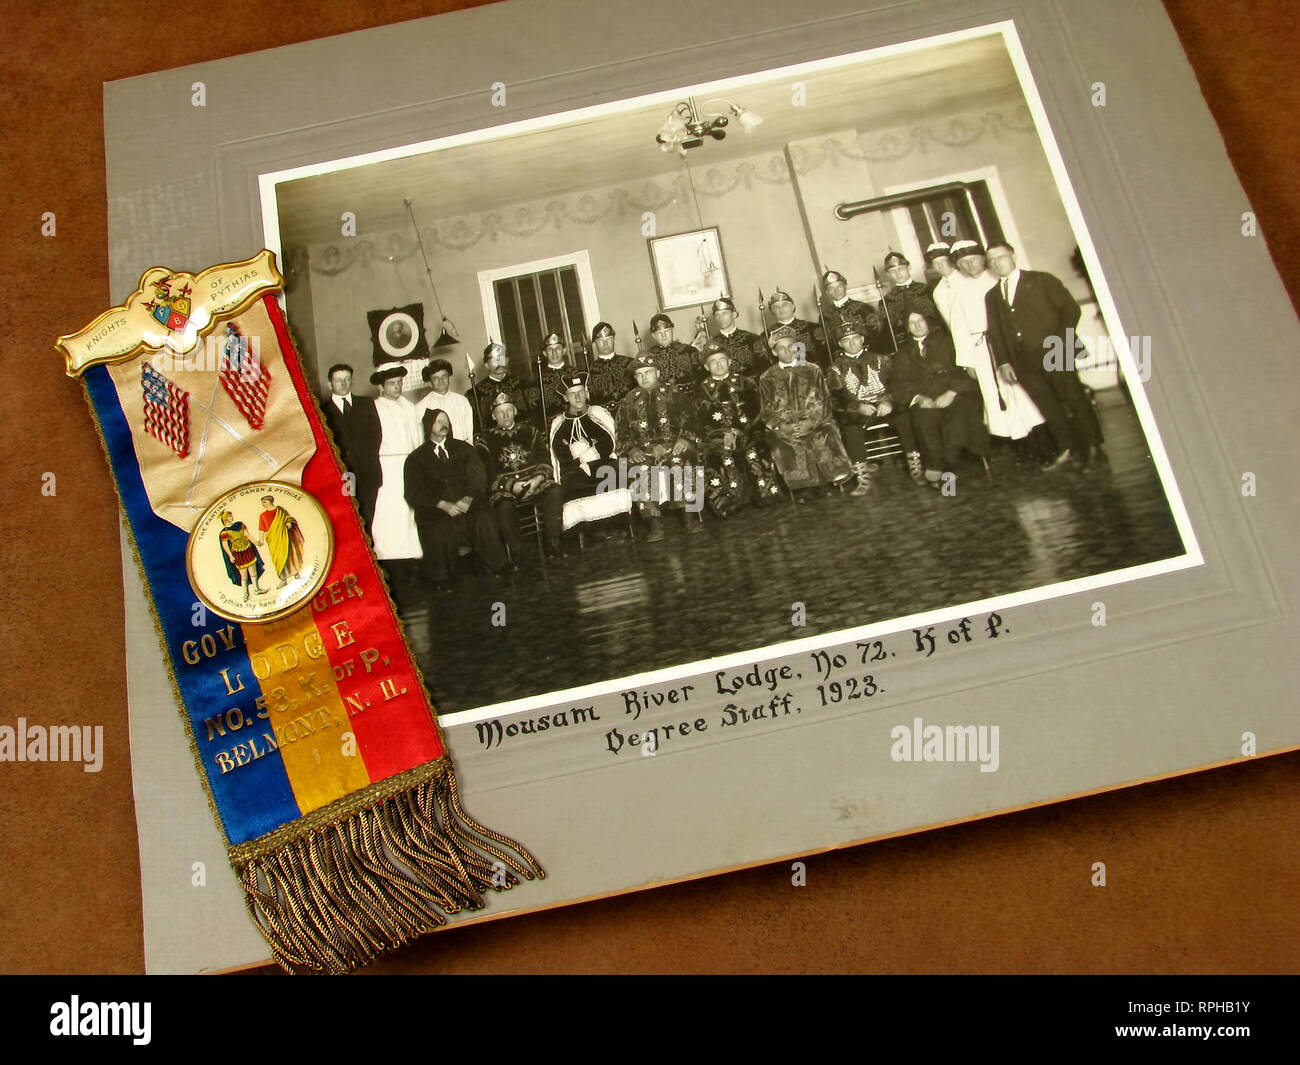 Vintage photo and ribbon of The Knights of Pythias, an early American fraternal order. Stock Photo